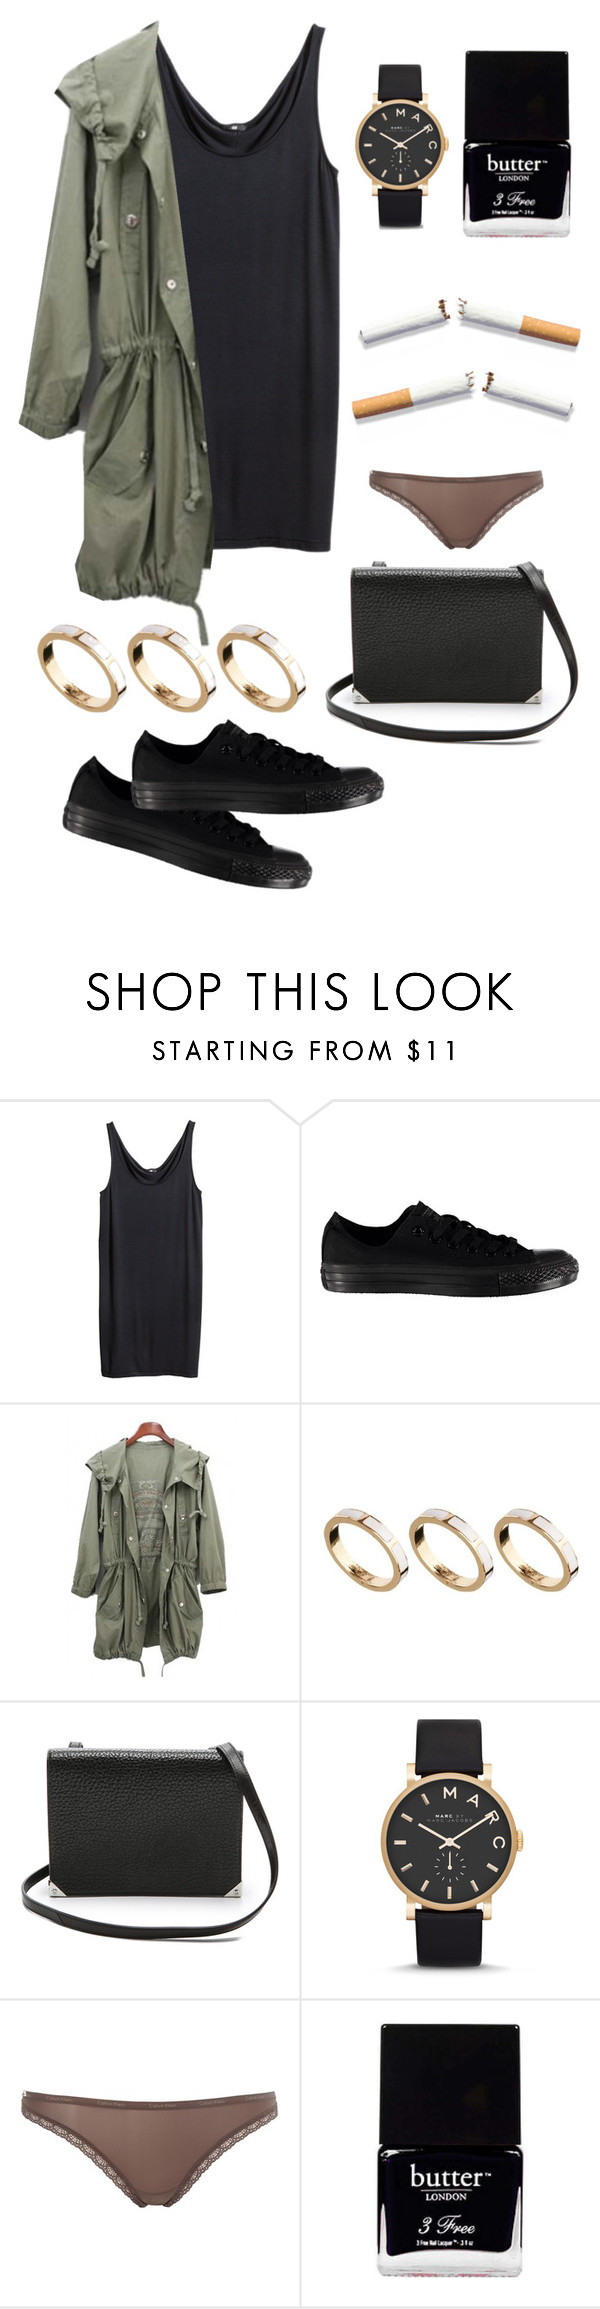 """Shopping days."" by sirenex ❤ liked on Polyvore featuring H&M, Converse, ASOS, Alexander Wang, Marc by Marc Jacobs, Calvin Klein, Butter London, women's clothing, women and female"